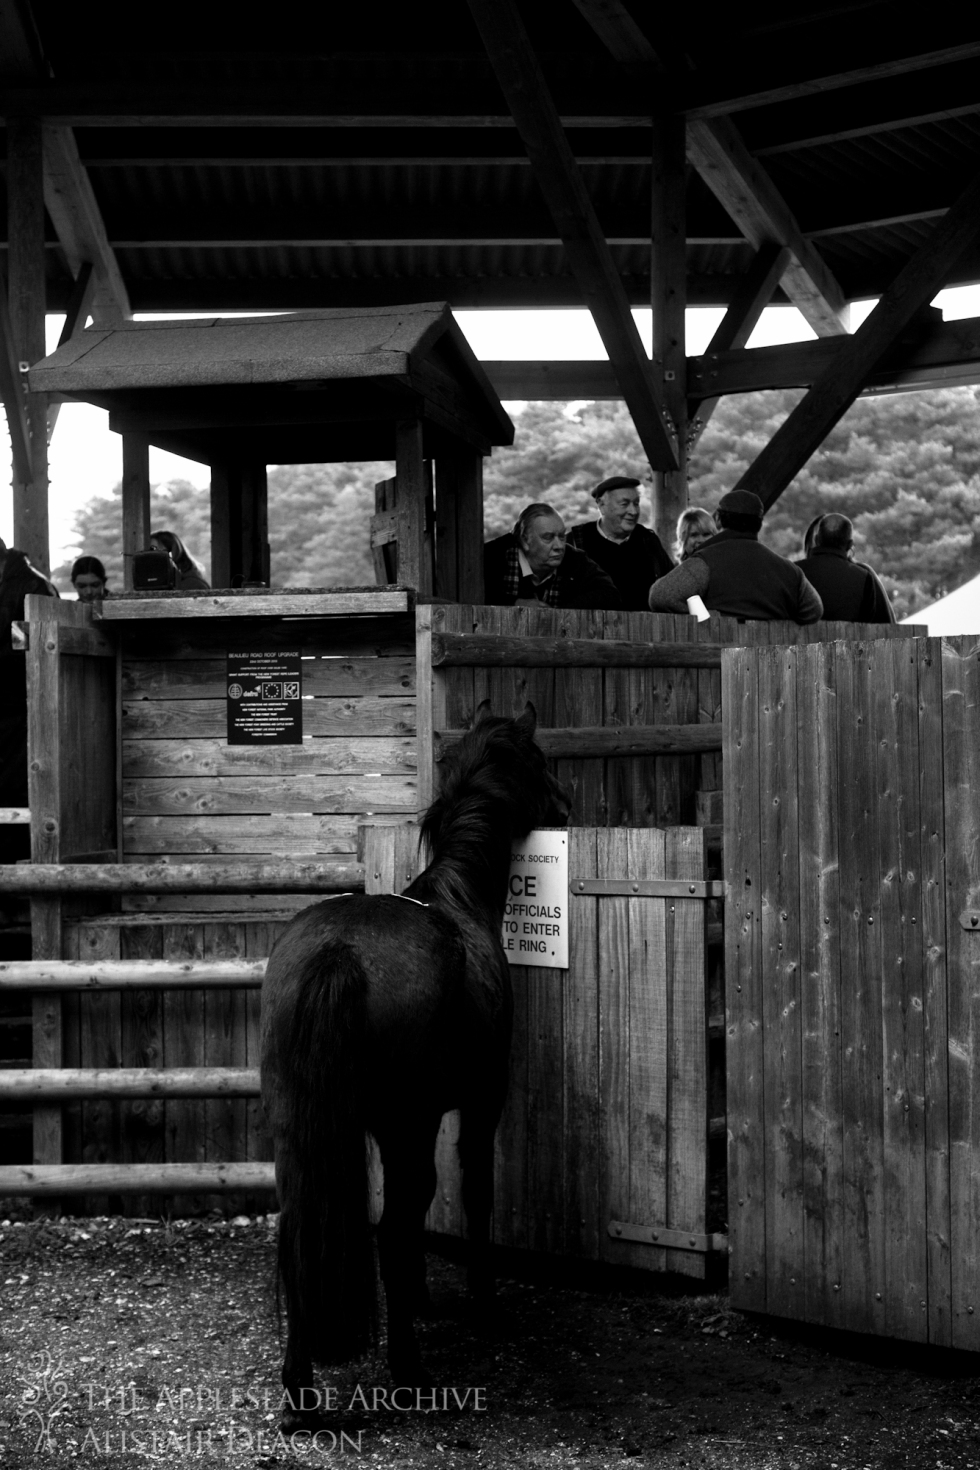 A pony in the sale ring, Beaulieu Road, New Forest, Hampshire, 28th Nov 2013